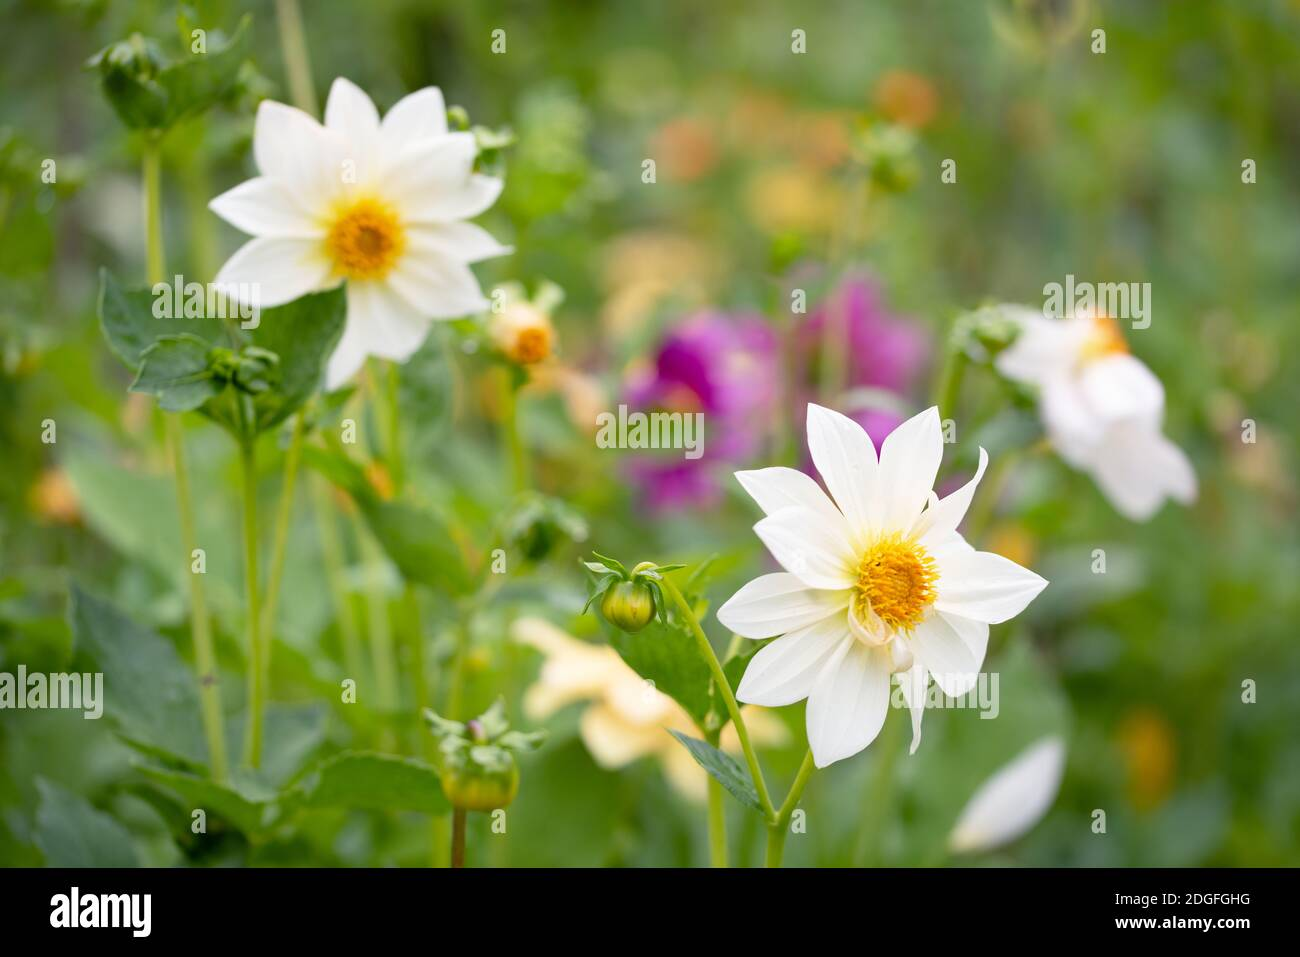 White Anemone Or Dahlia Flowers In The Field Of Flowers Stock Photo Alamy